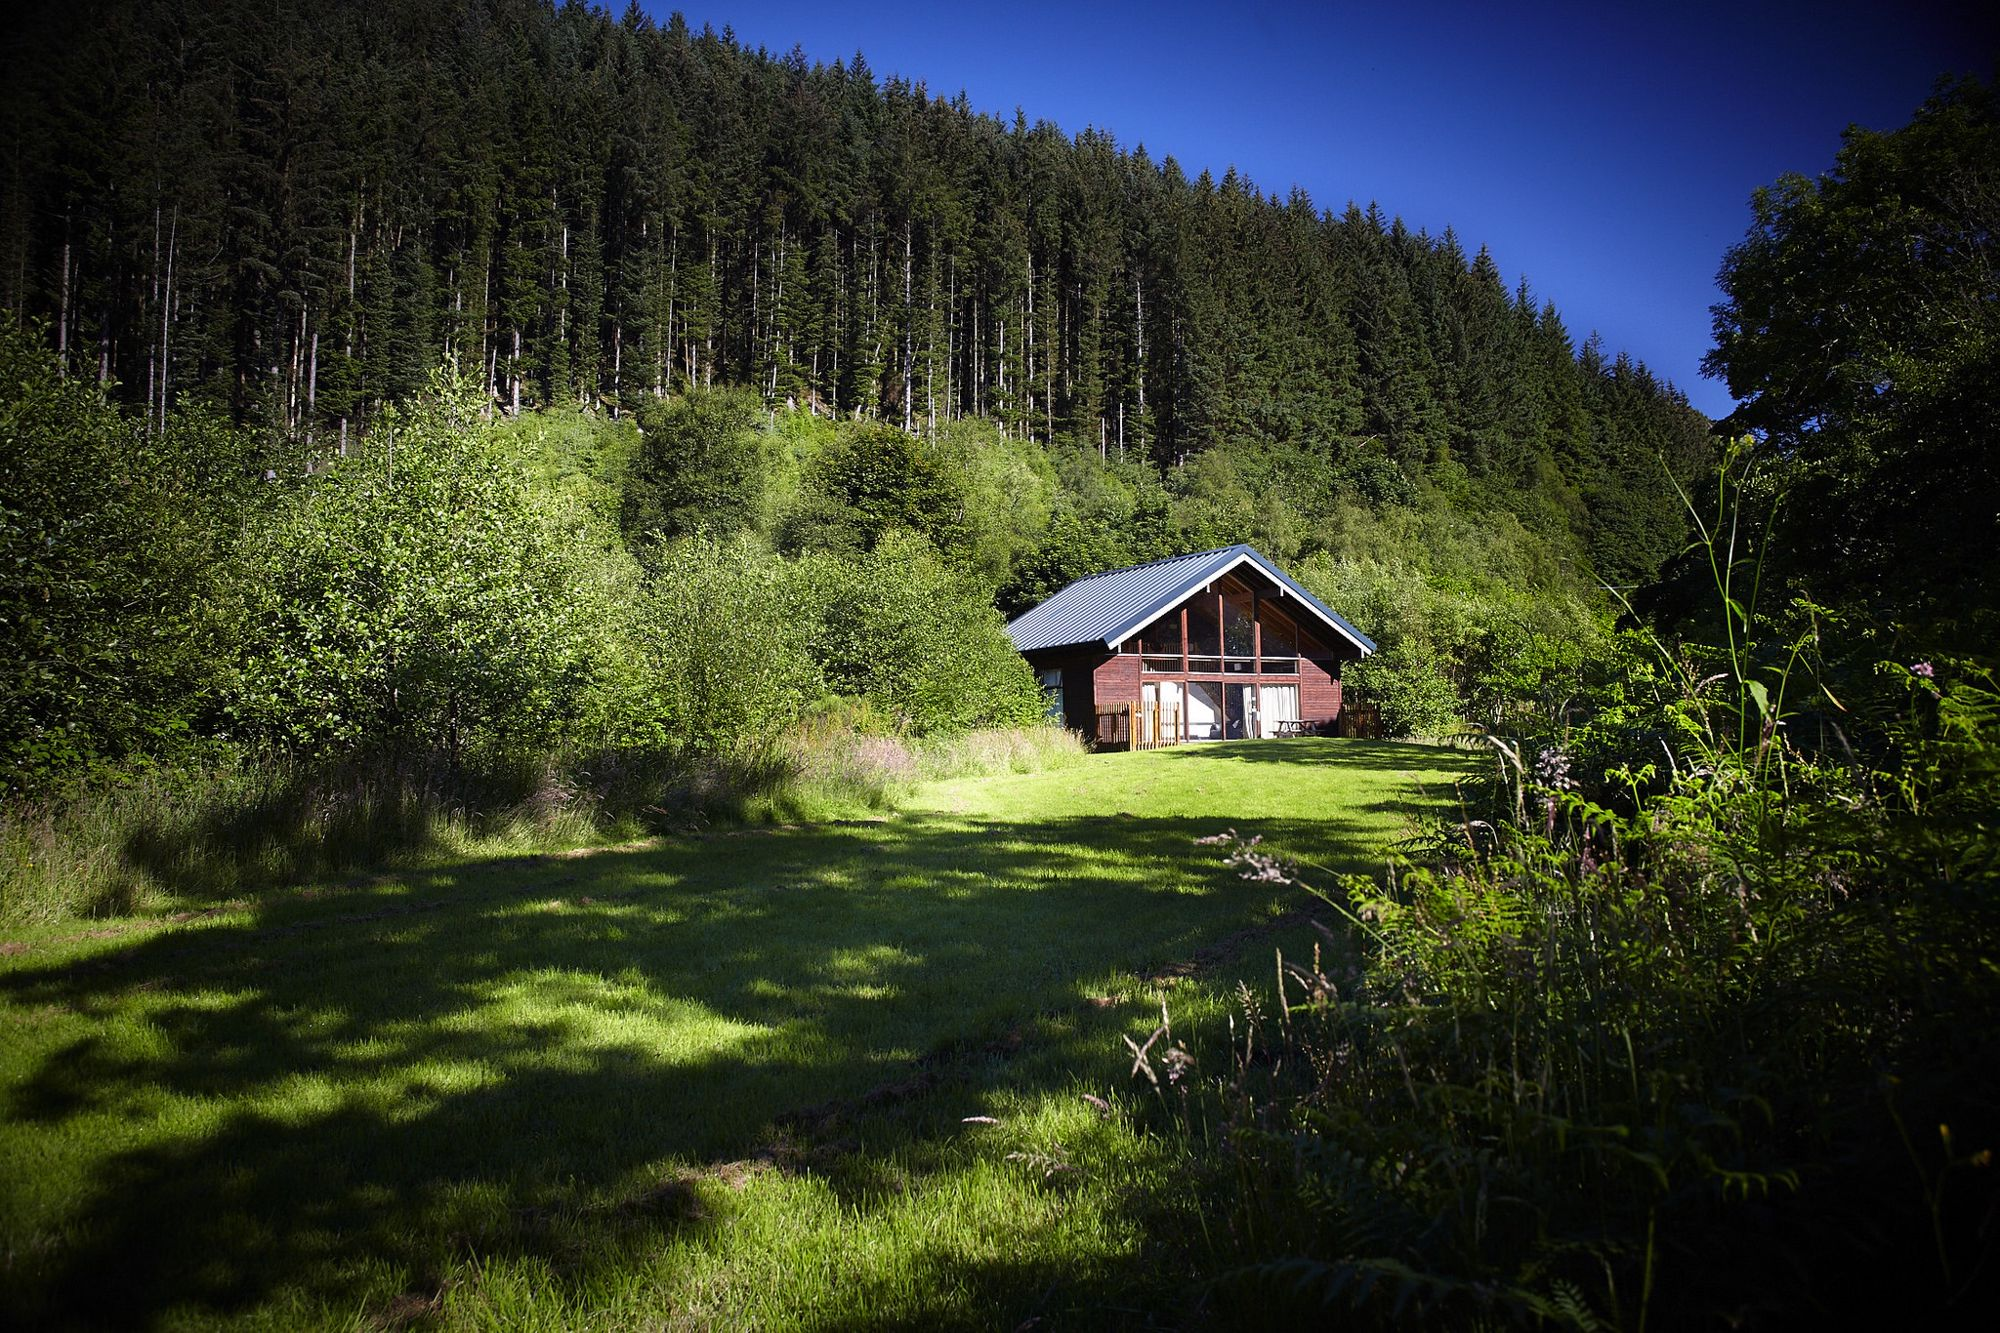 Hotels, Cottages, B&Bs & Glamping in Central Scotland - Cool Places to Stay in the UK